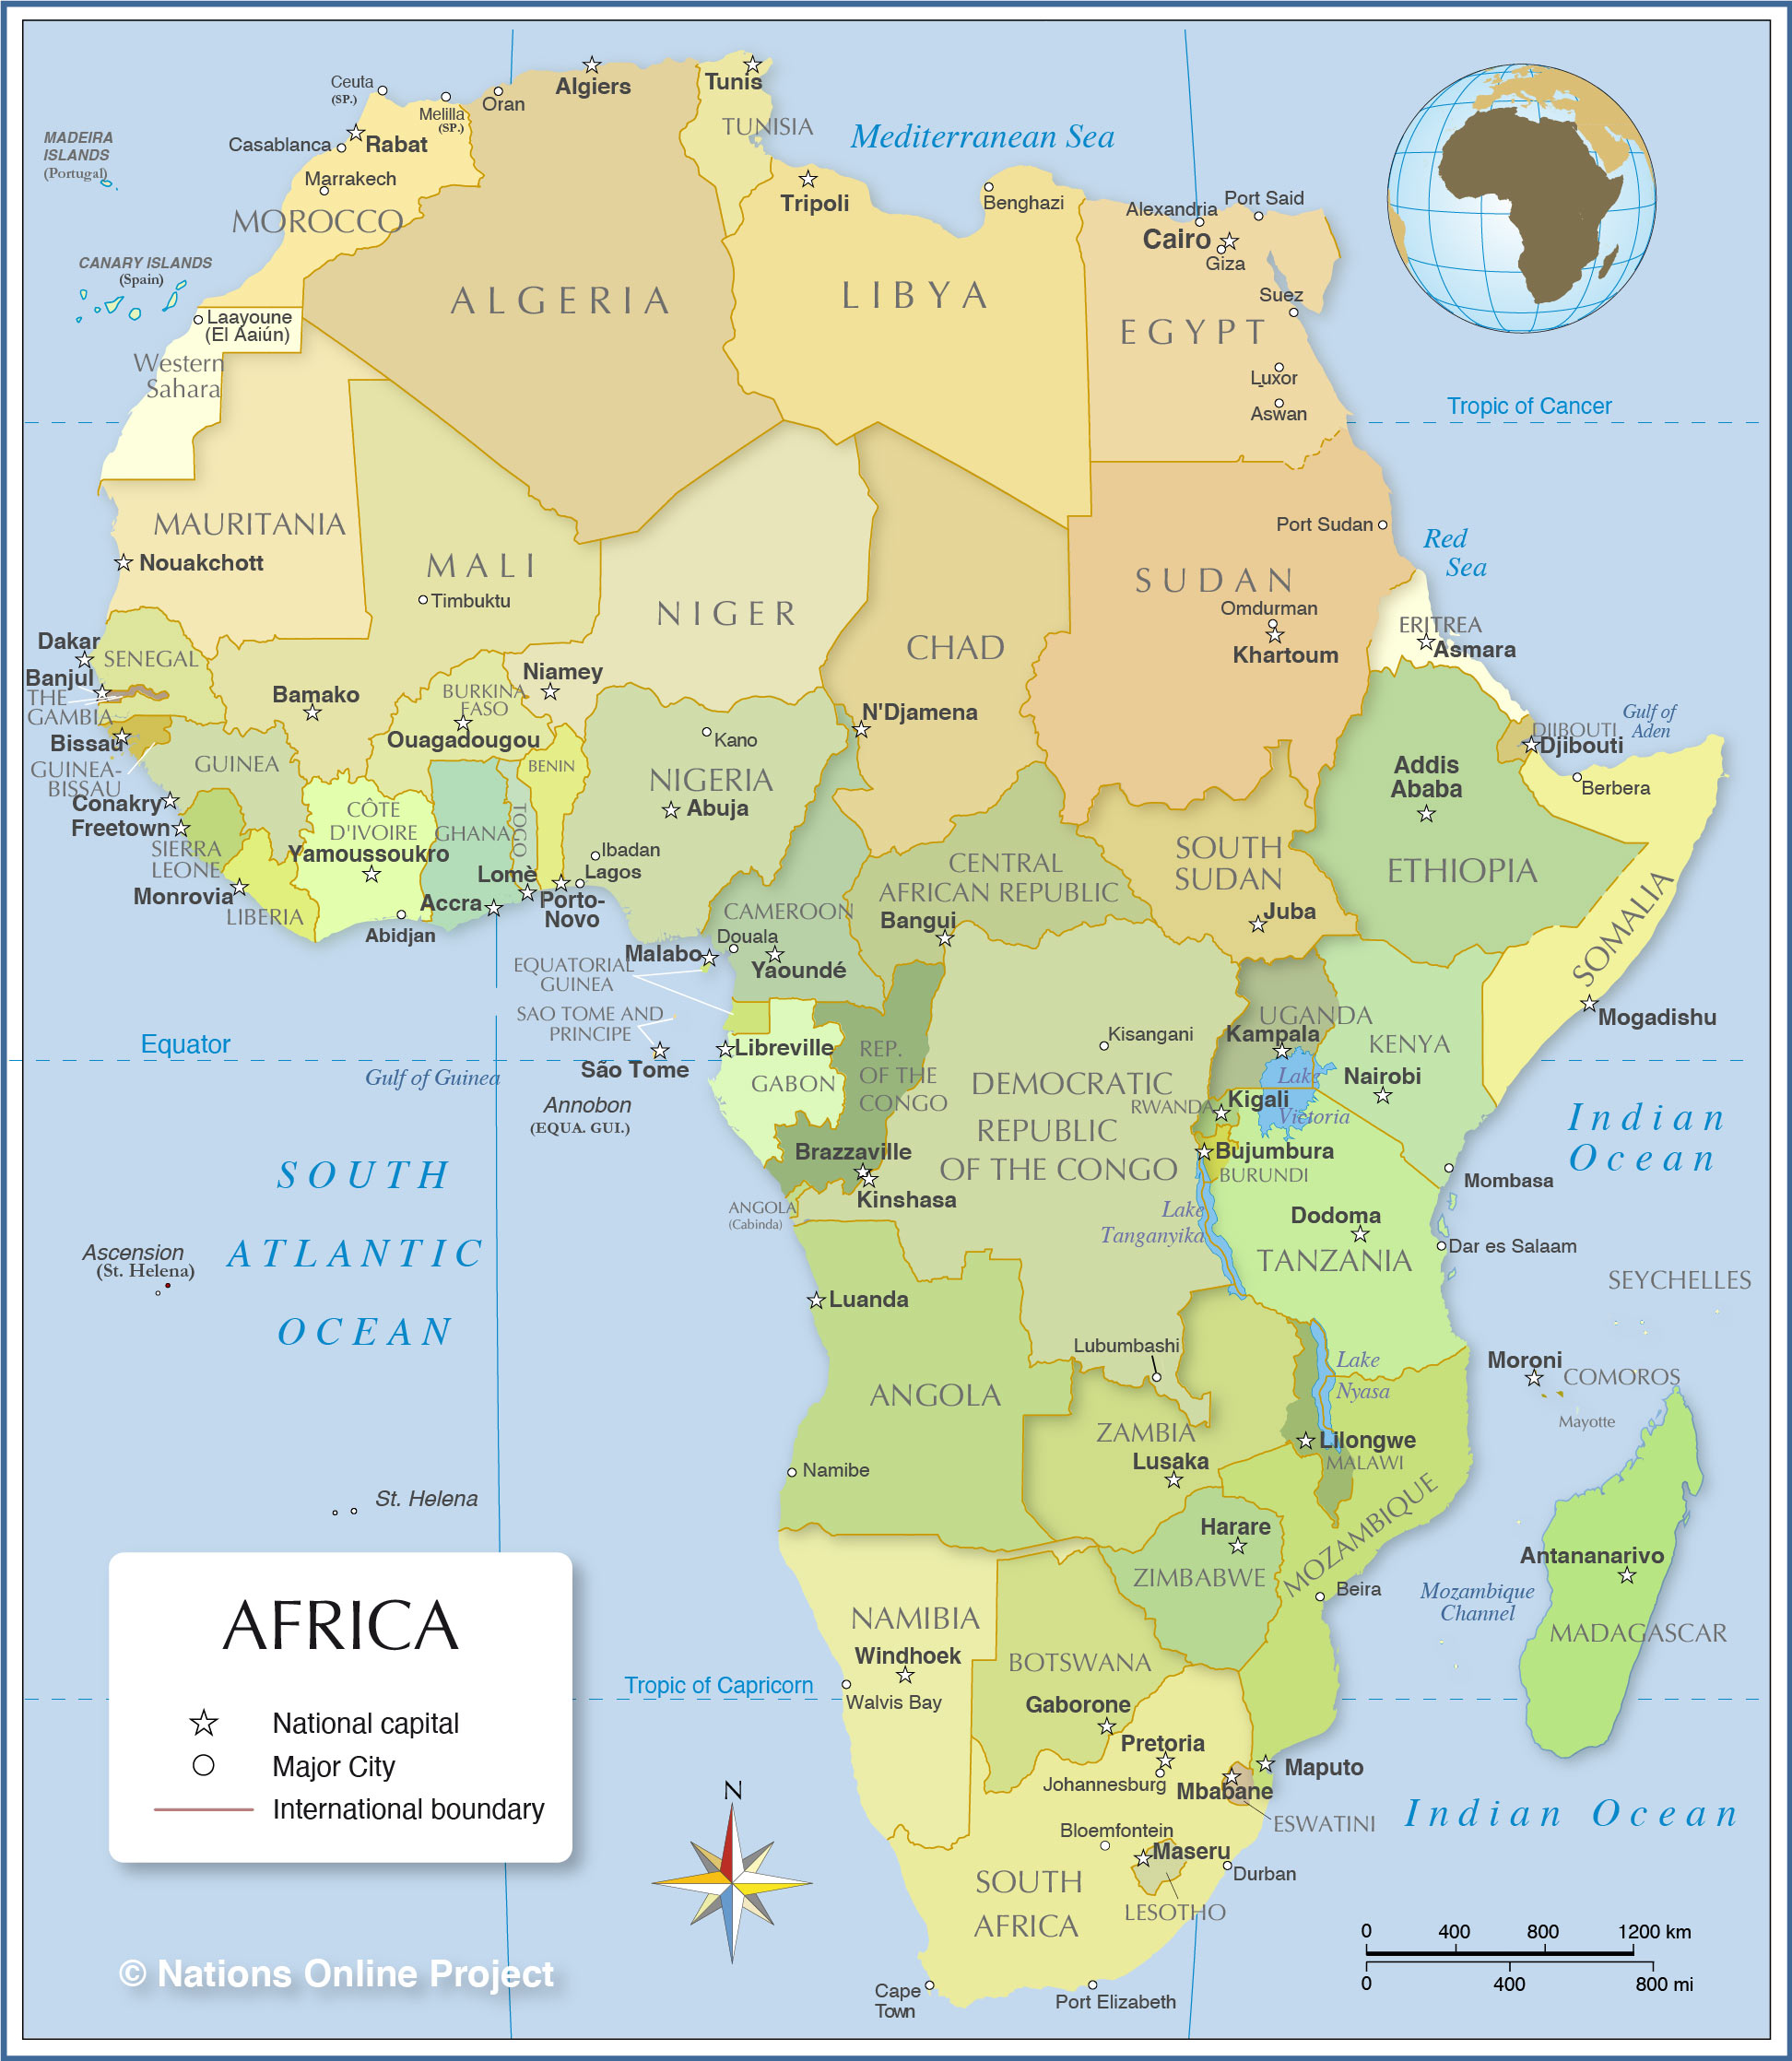 sudan map in africa Political Map Of Africa Nations Online Project sudan map in africa